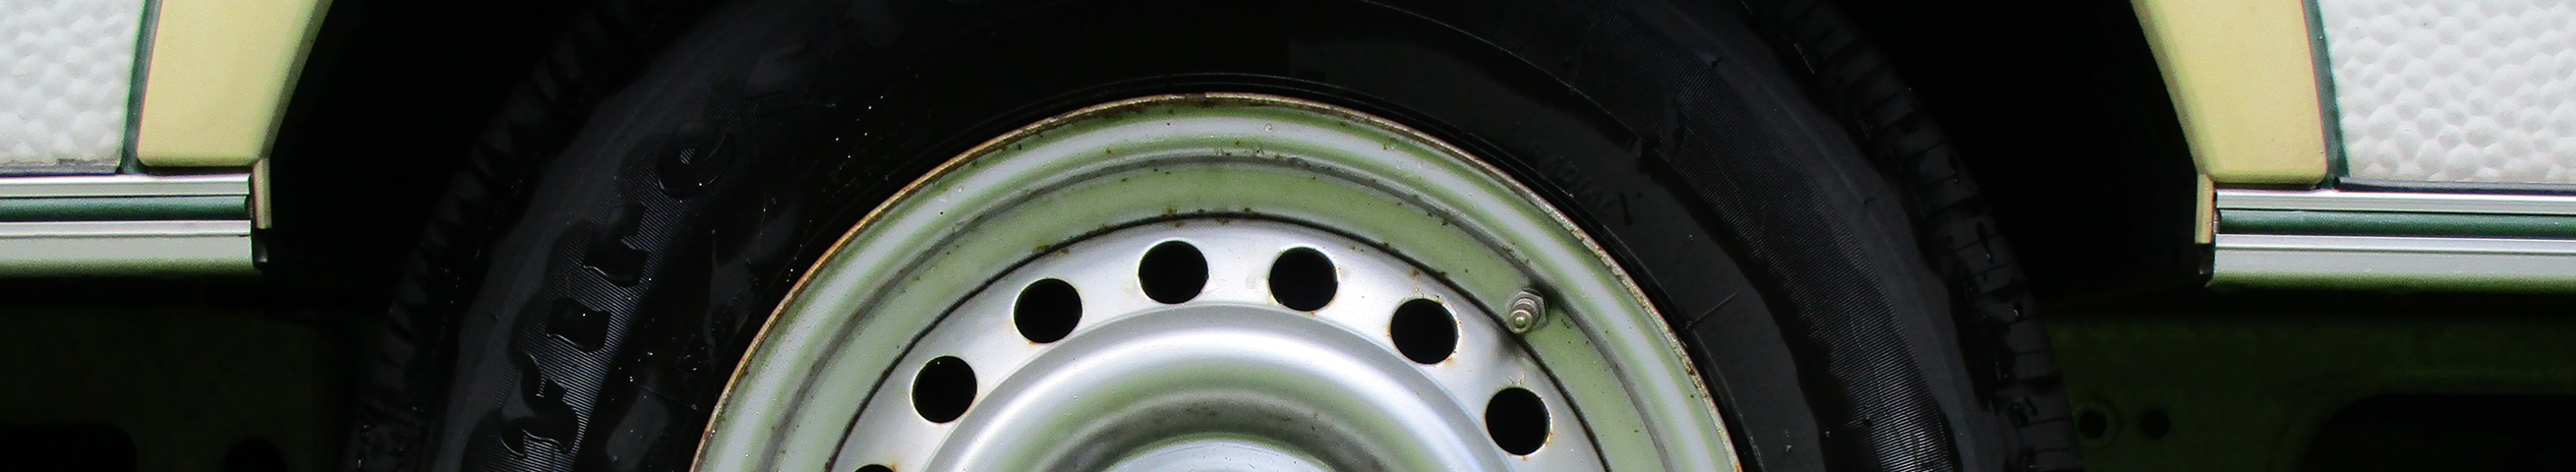 alko spare wheel carrier instructions